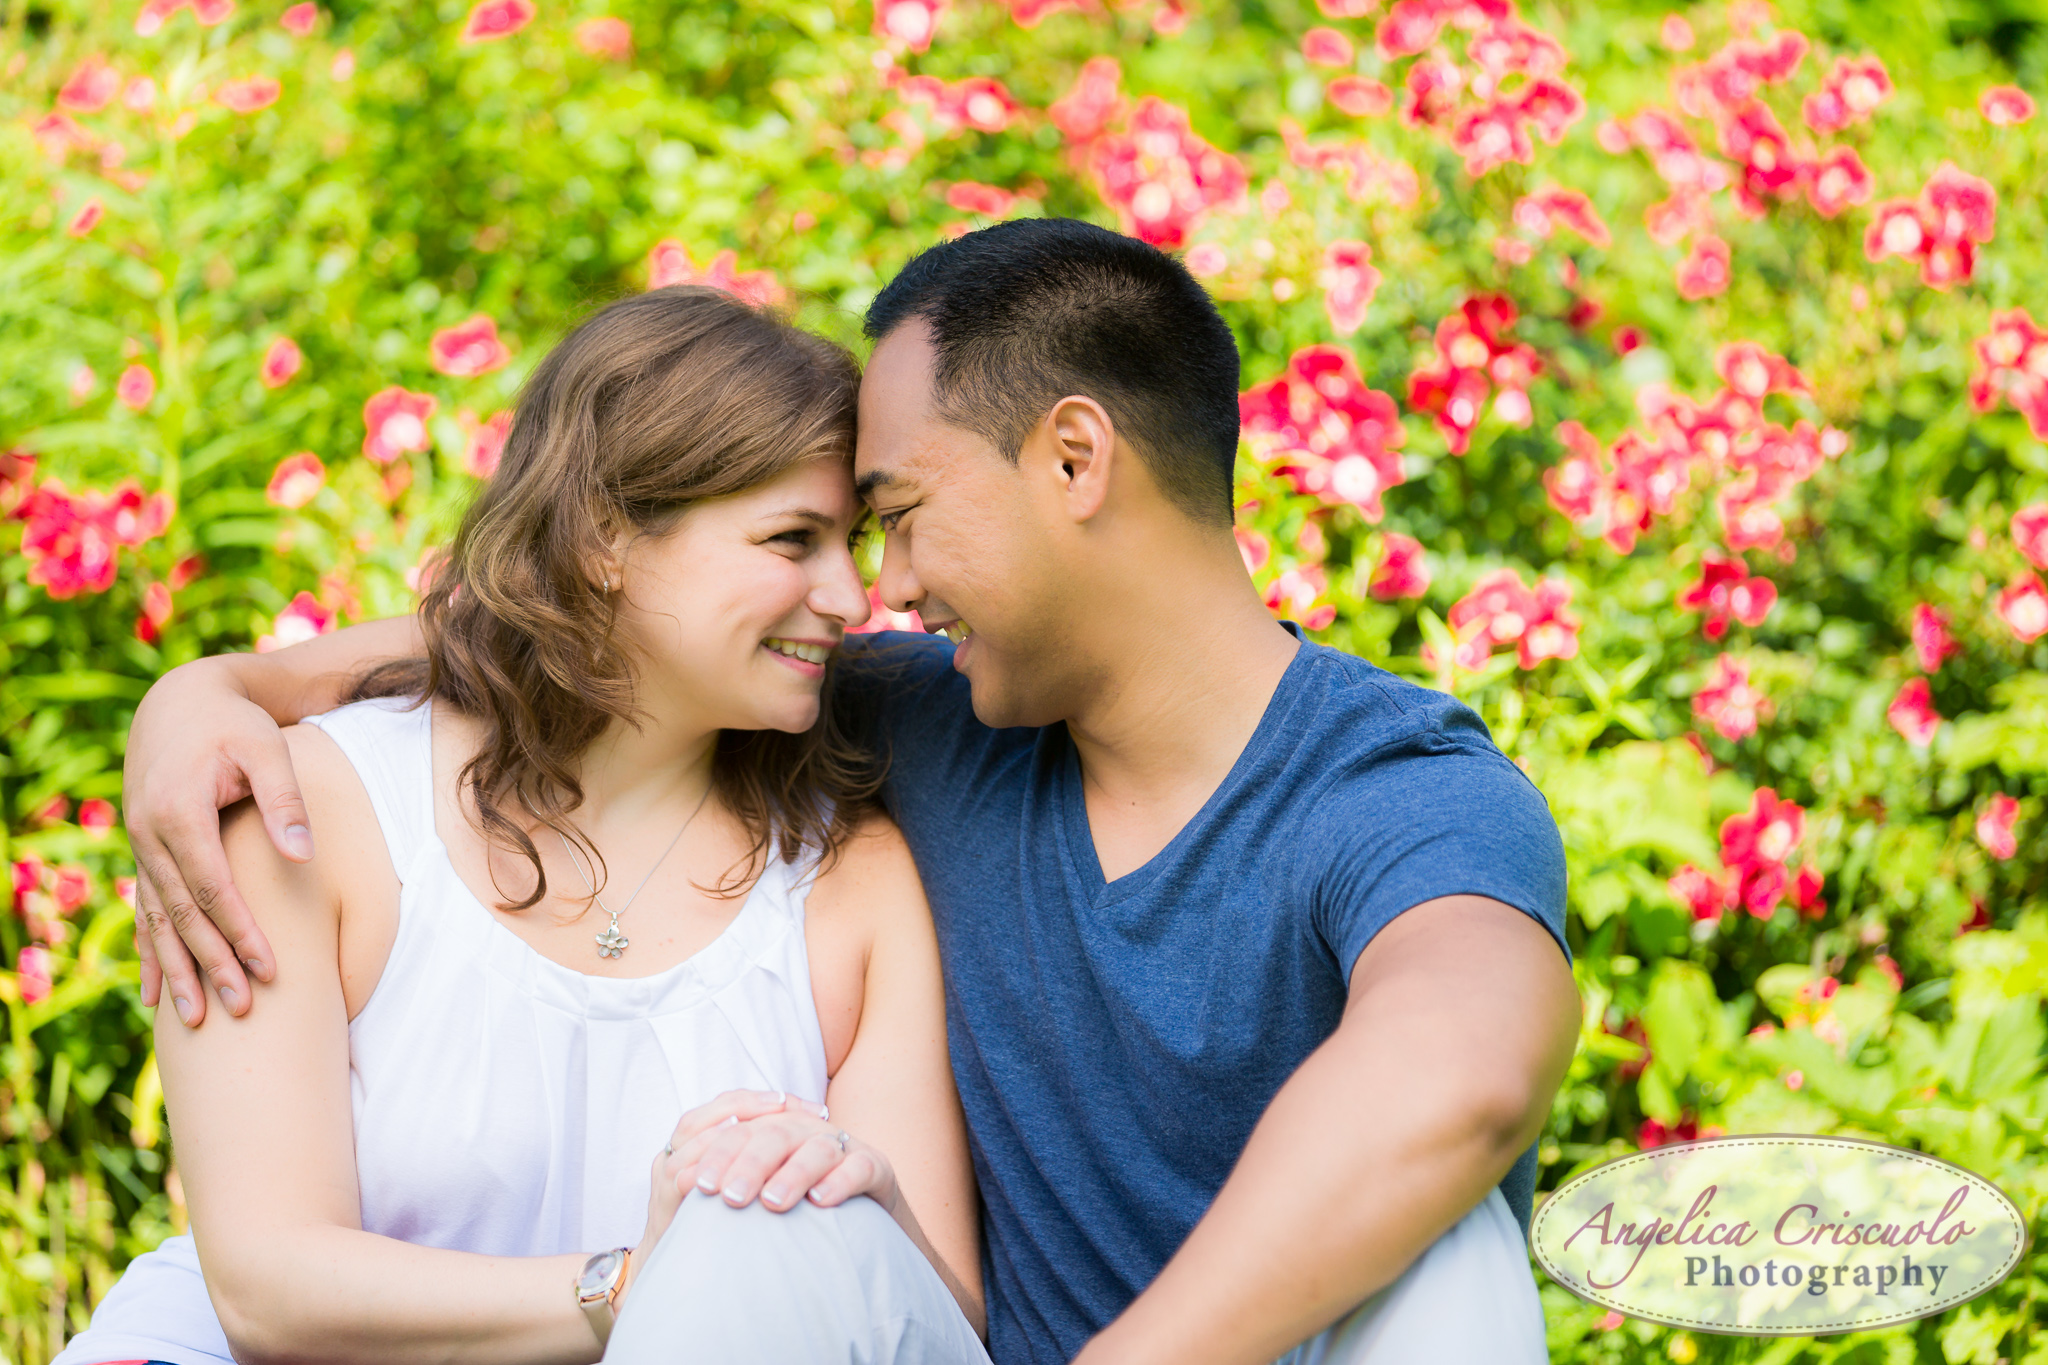 Romantic engagement photos ideas in NJ Botanical Garden Arboretum